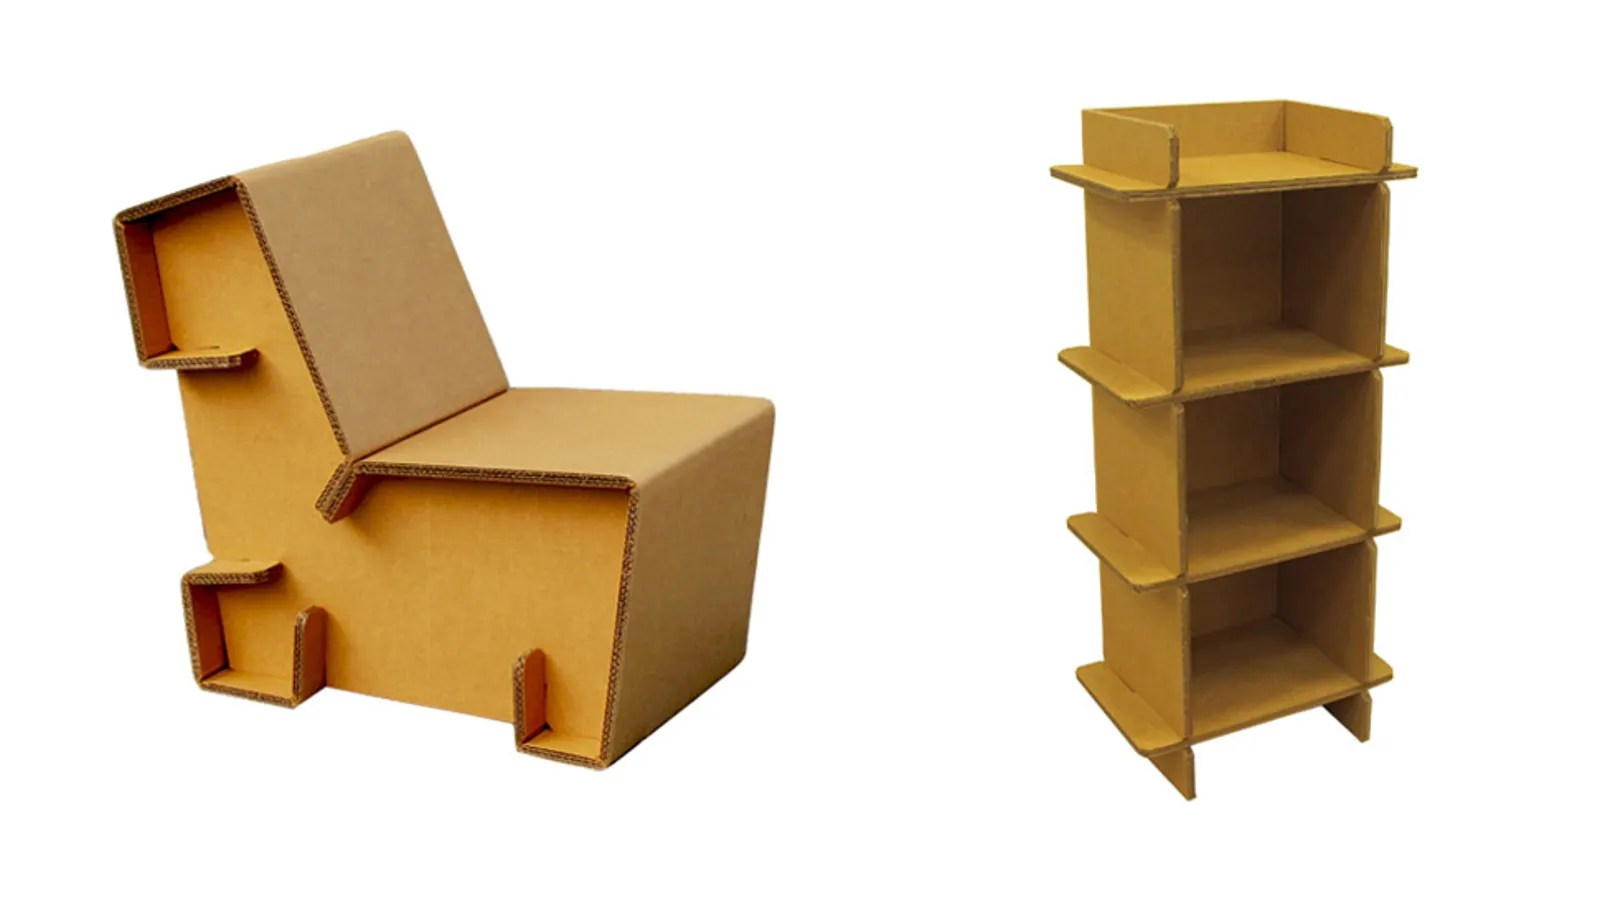 Cardboard Chair Refoldable Cardboard Furniture Makes It Cheap And Easy To